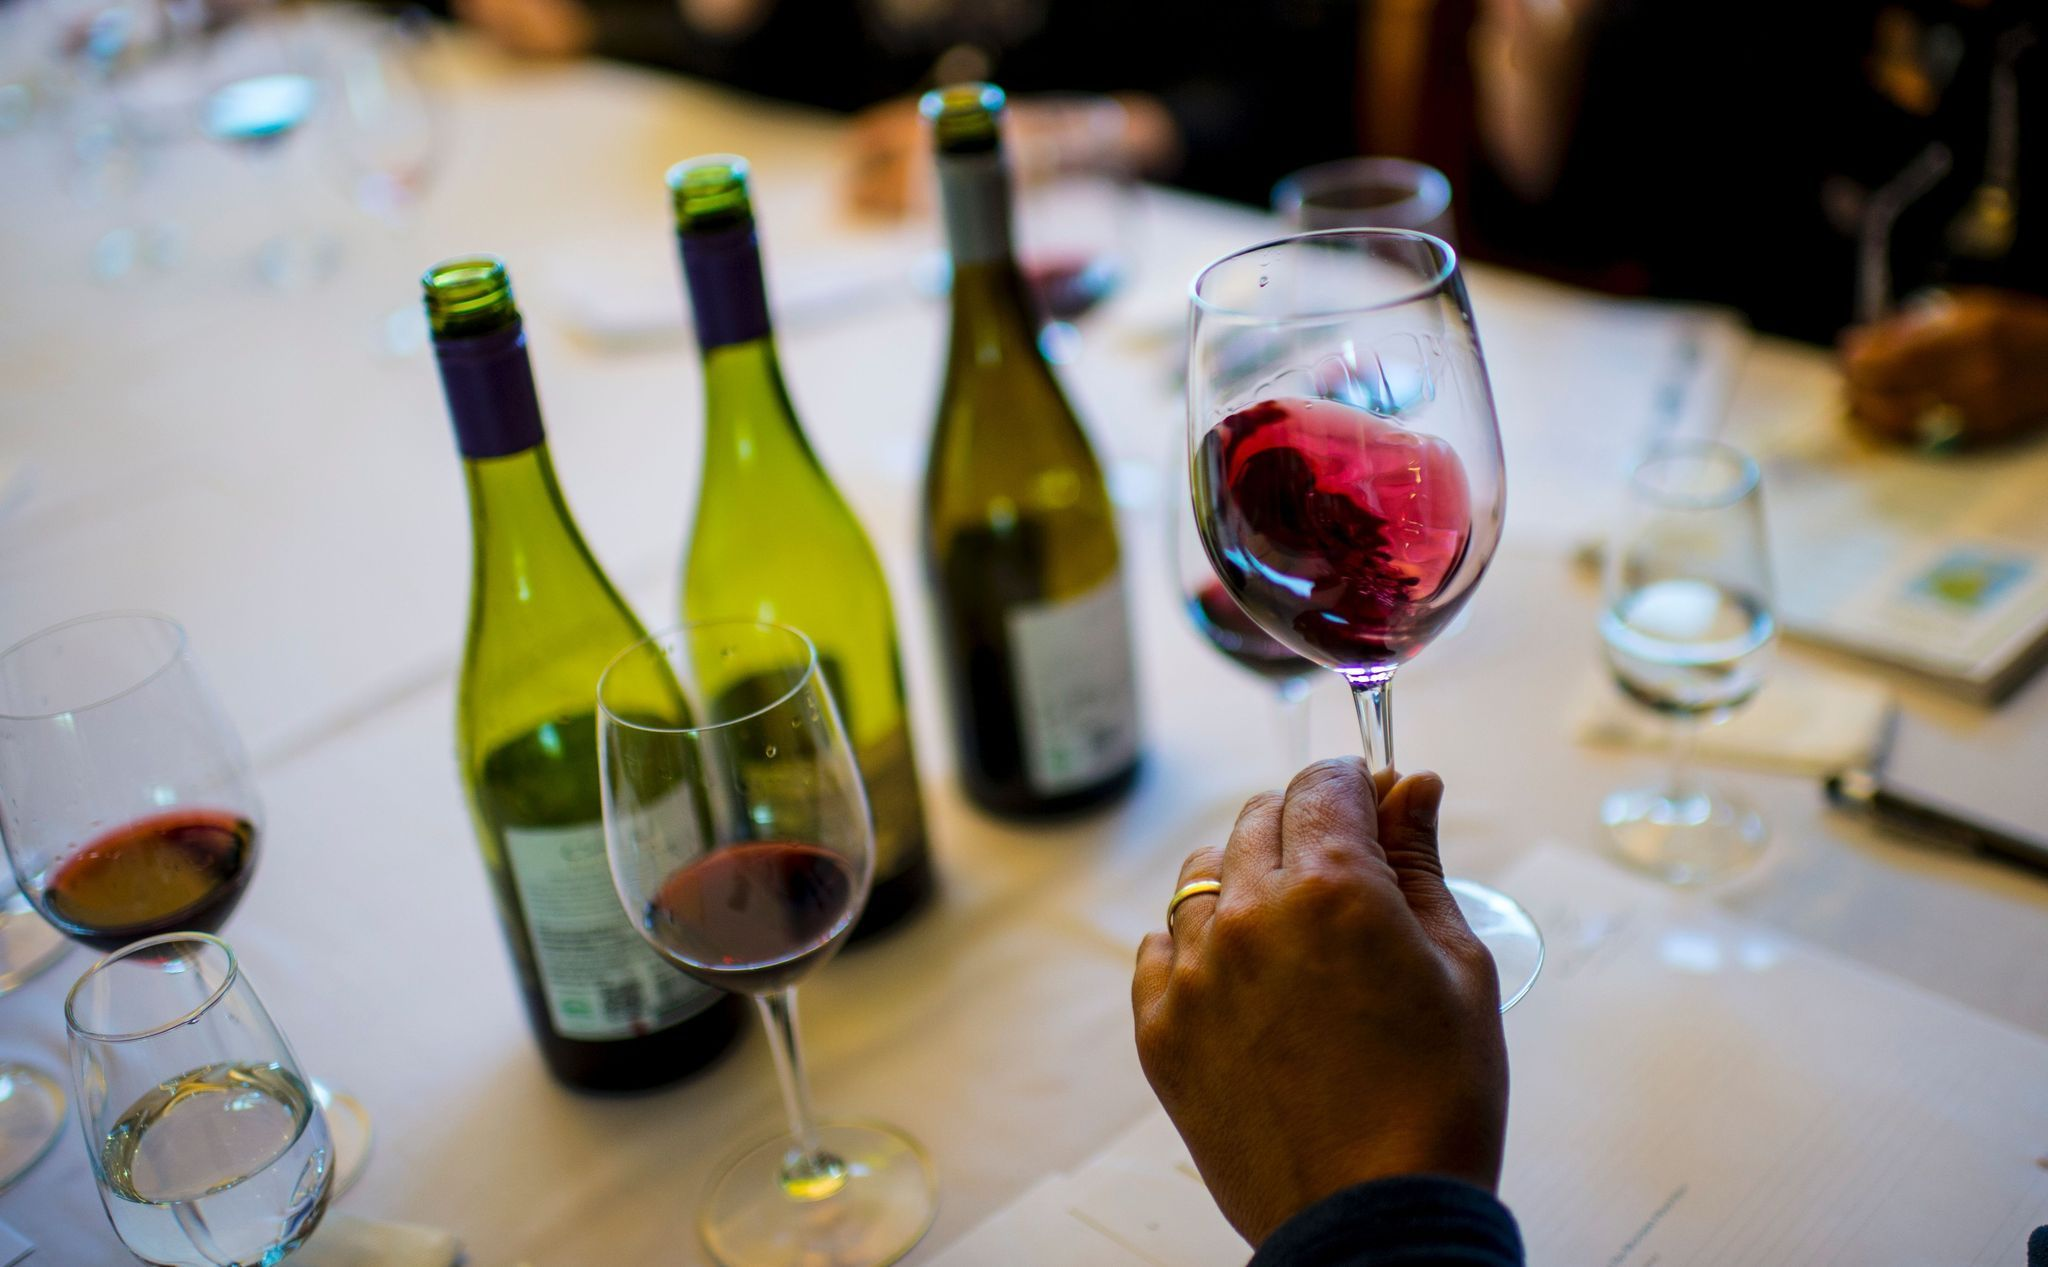 Wine and coffee lovers, drink up! It's great for your microbiome